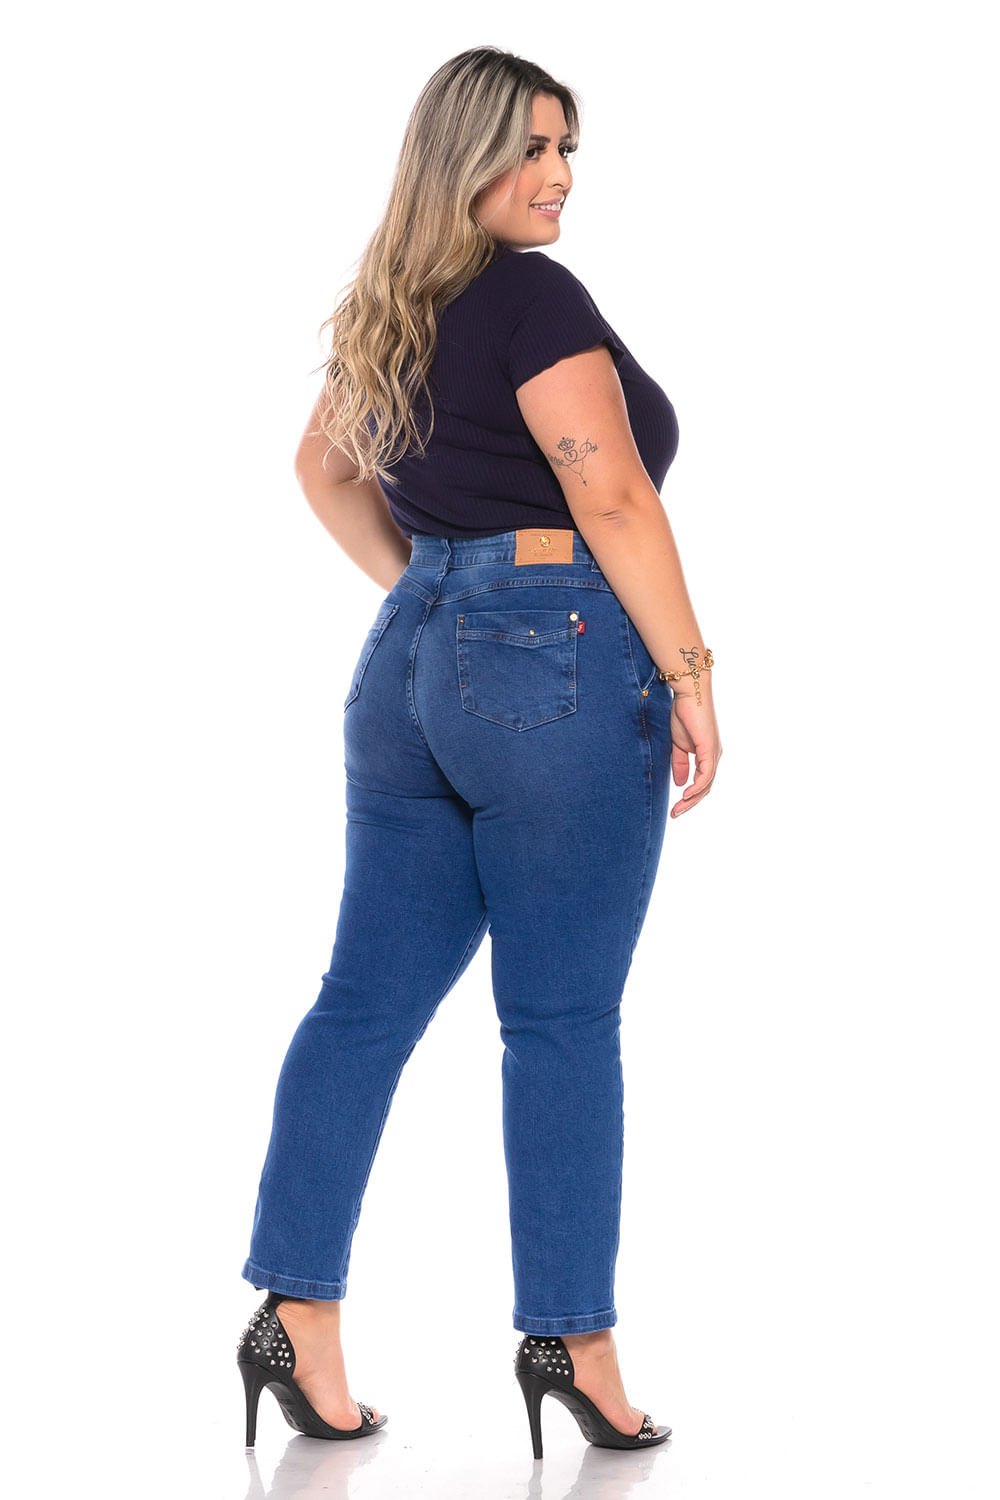 FCT5146_Calca_Cropped_Plus_Size_Jeans_AZUL_6